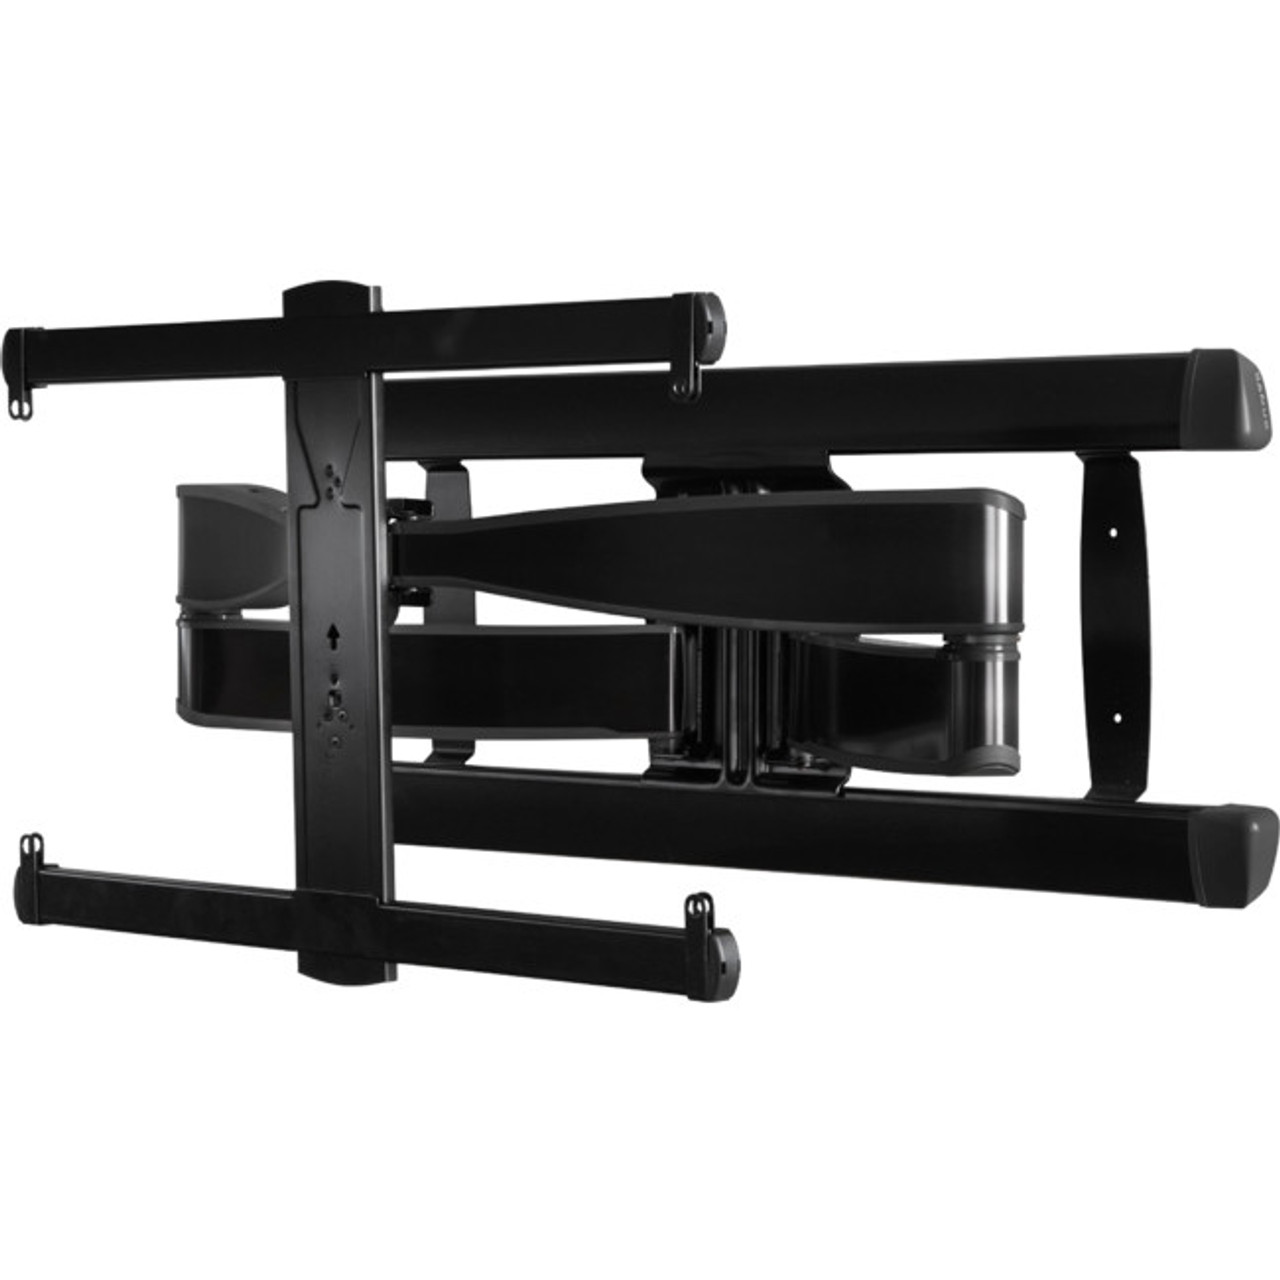 "Sanus VLF728-B2 Full-Motion Mount for 42"" - 90"" TVs up to 57kg - RRP $549.00"